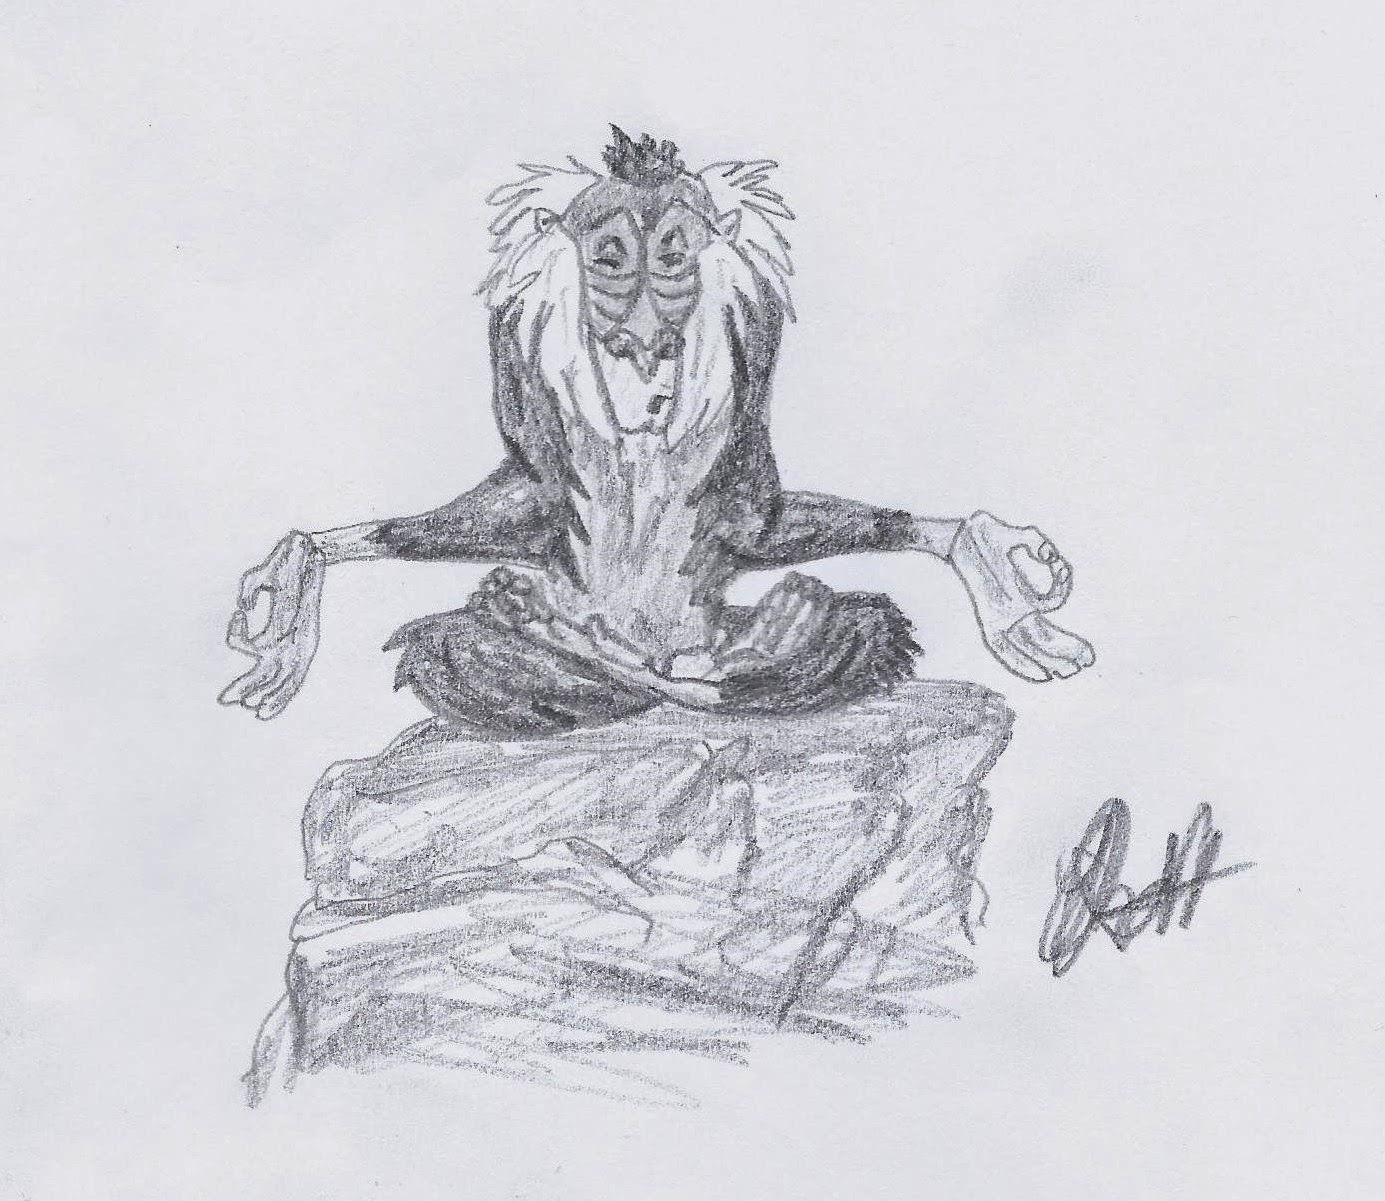 Rafiki from The Lion King, sketch by Jo Linsdell